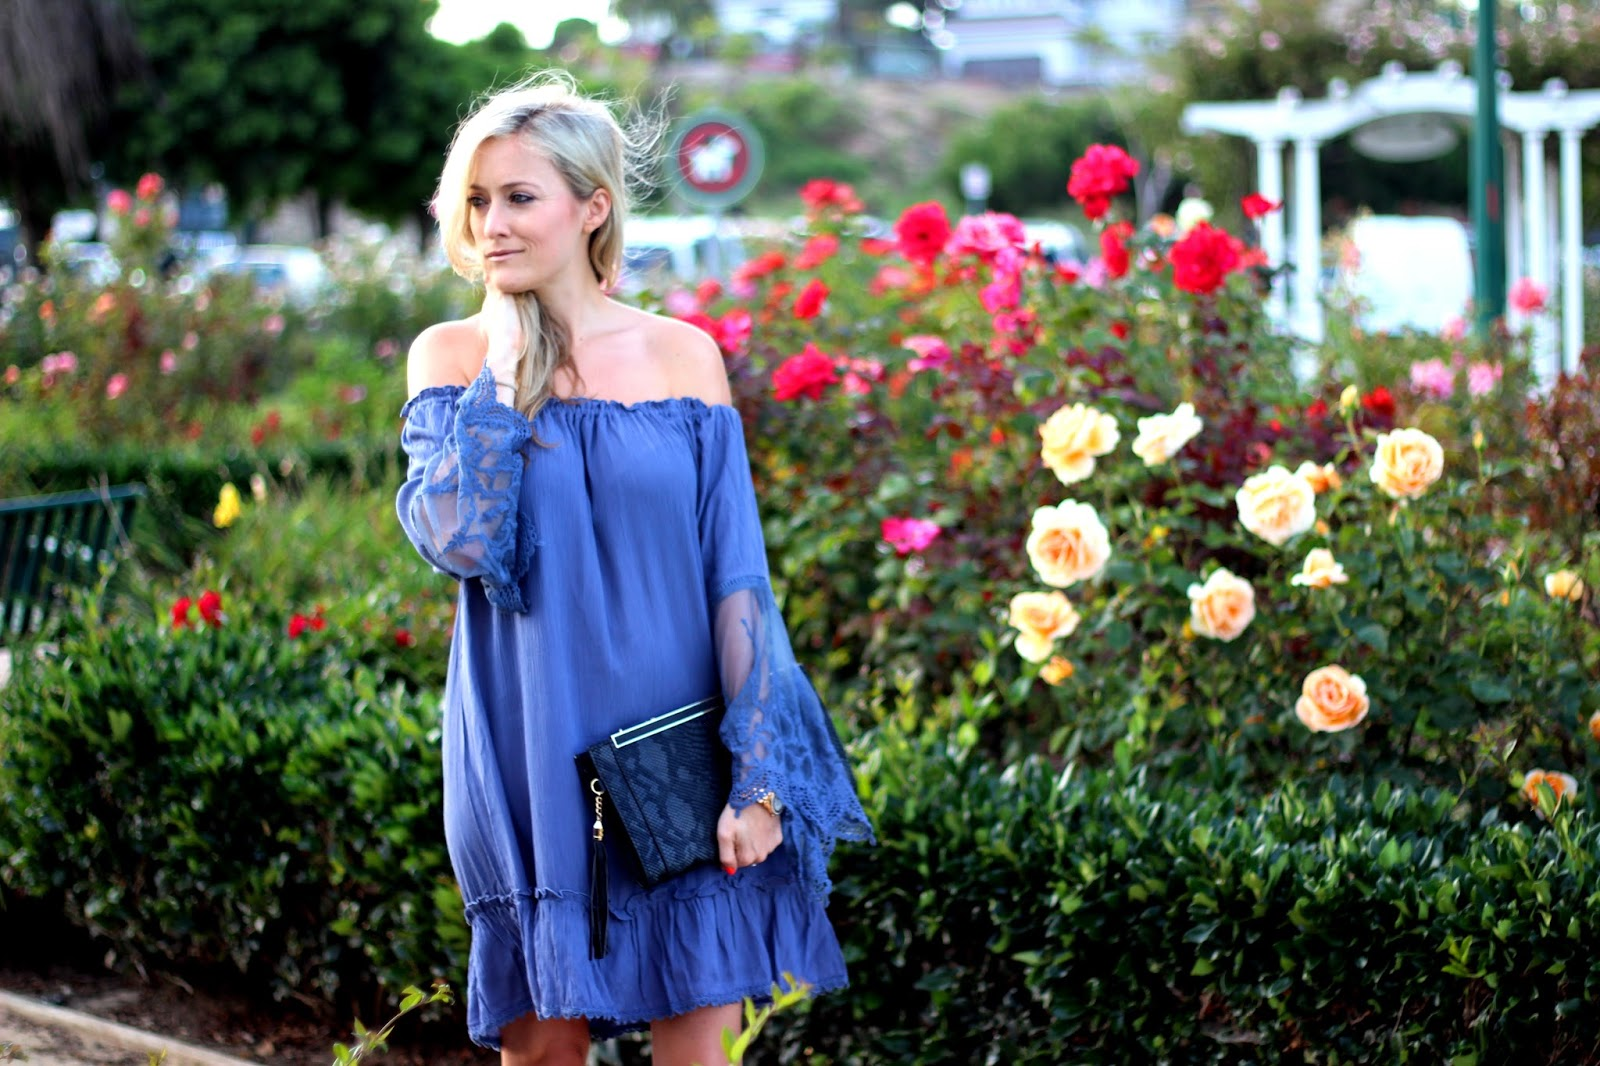 Off The Shoulder Grey Dress C O Lulus Her Me Timbers Black Clutch And Anne Michelle Enzo 01n Nubuck Single Strap Heels